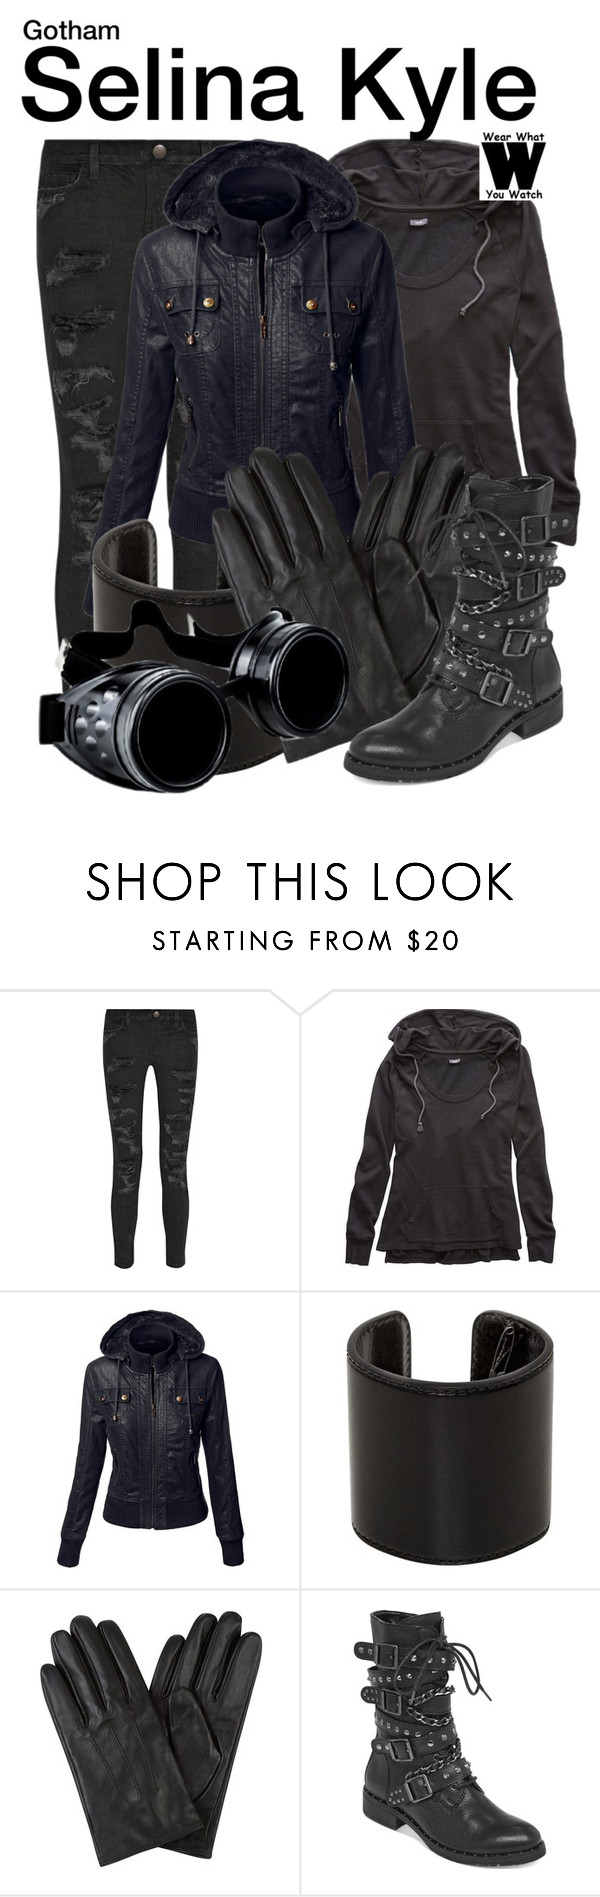 """Gotham"" by wearwhatyouwatch ❤ liked on Polyvore featuring Current/Elliott, Aerie, Ann Demeulemeester, BCBGeneration, television and wearwhatyouwatch"